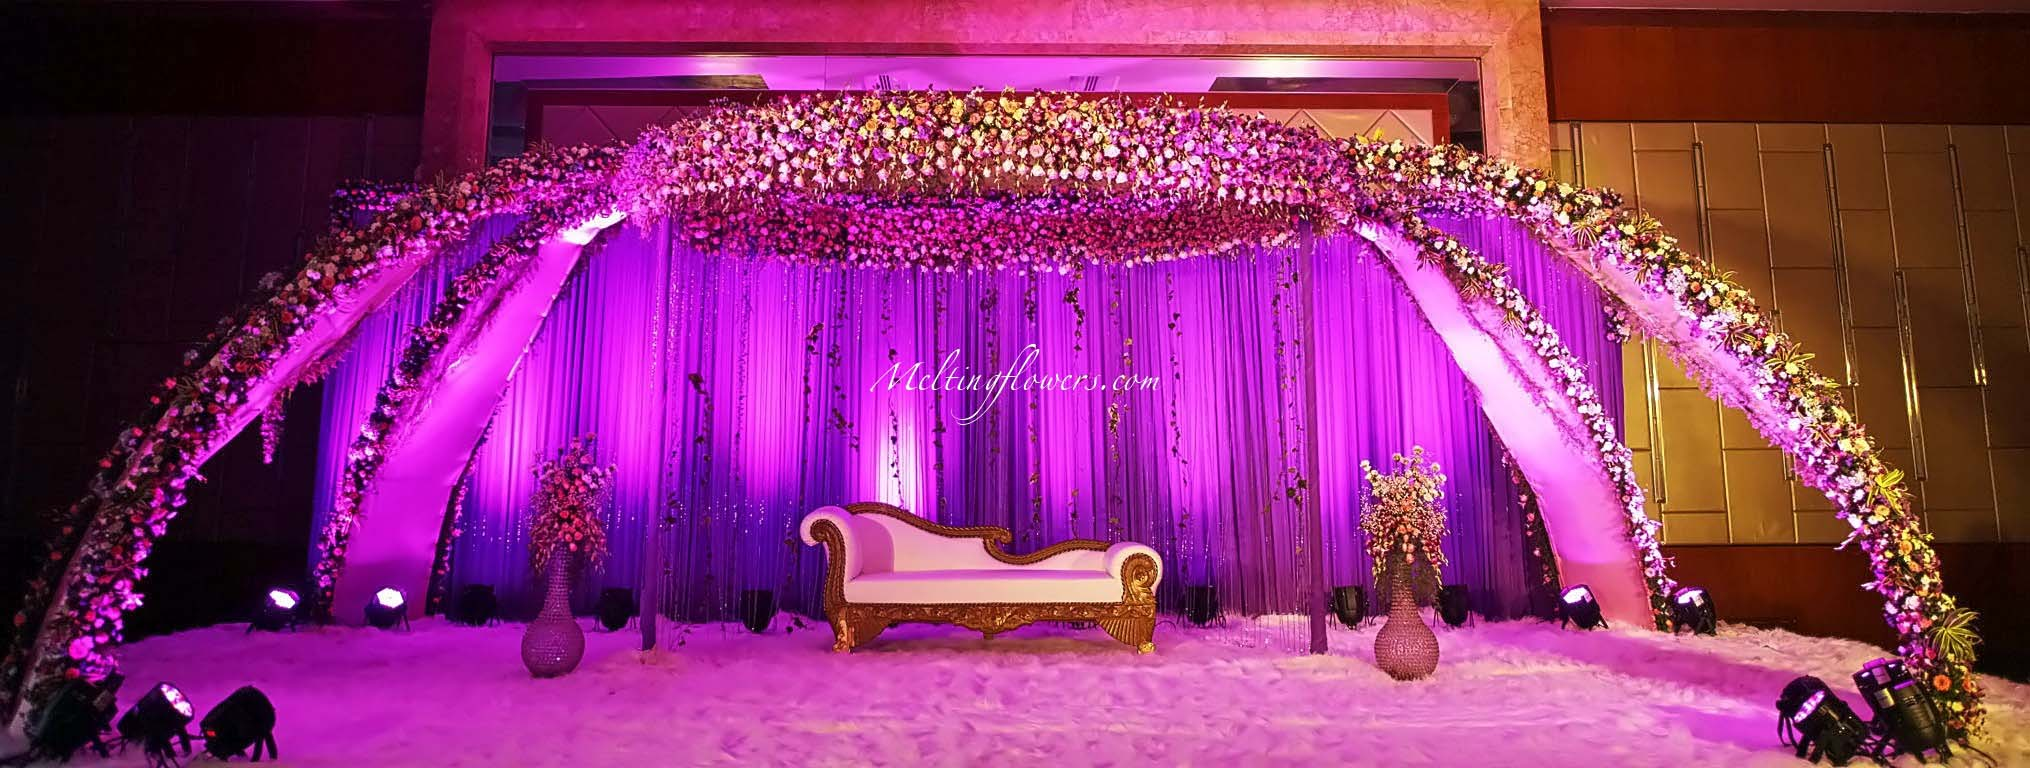 Extraordinary wedding decorations backdrop pictures design for Backdrop decoration